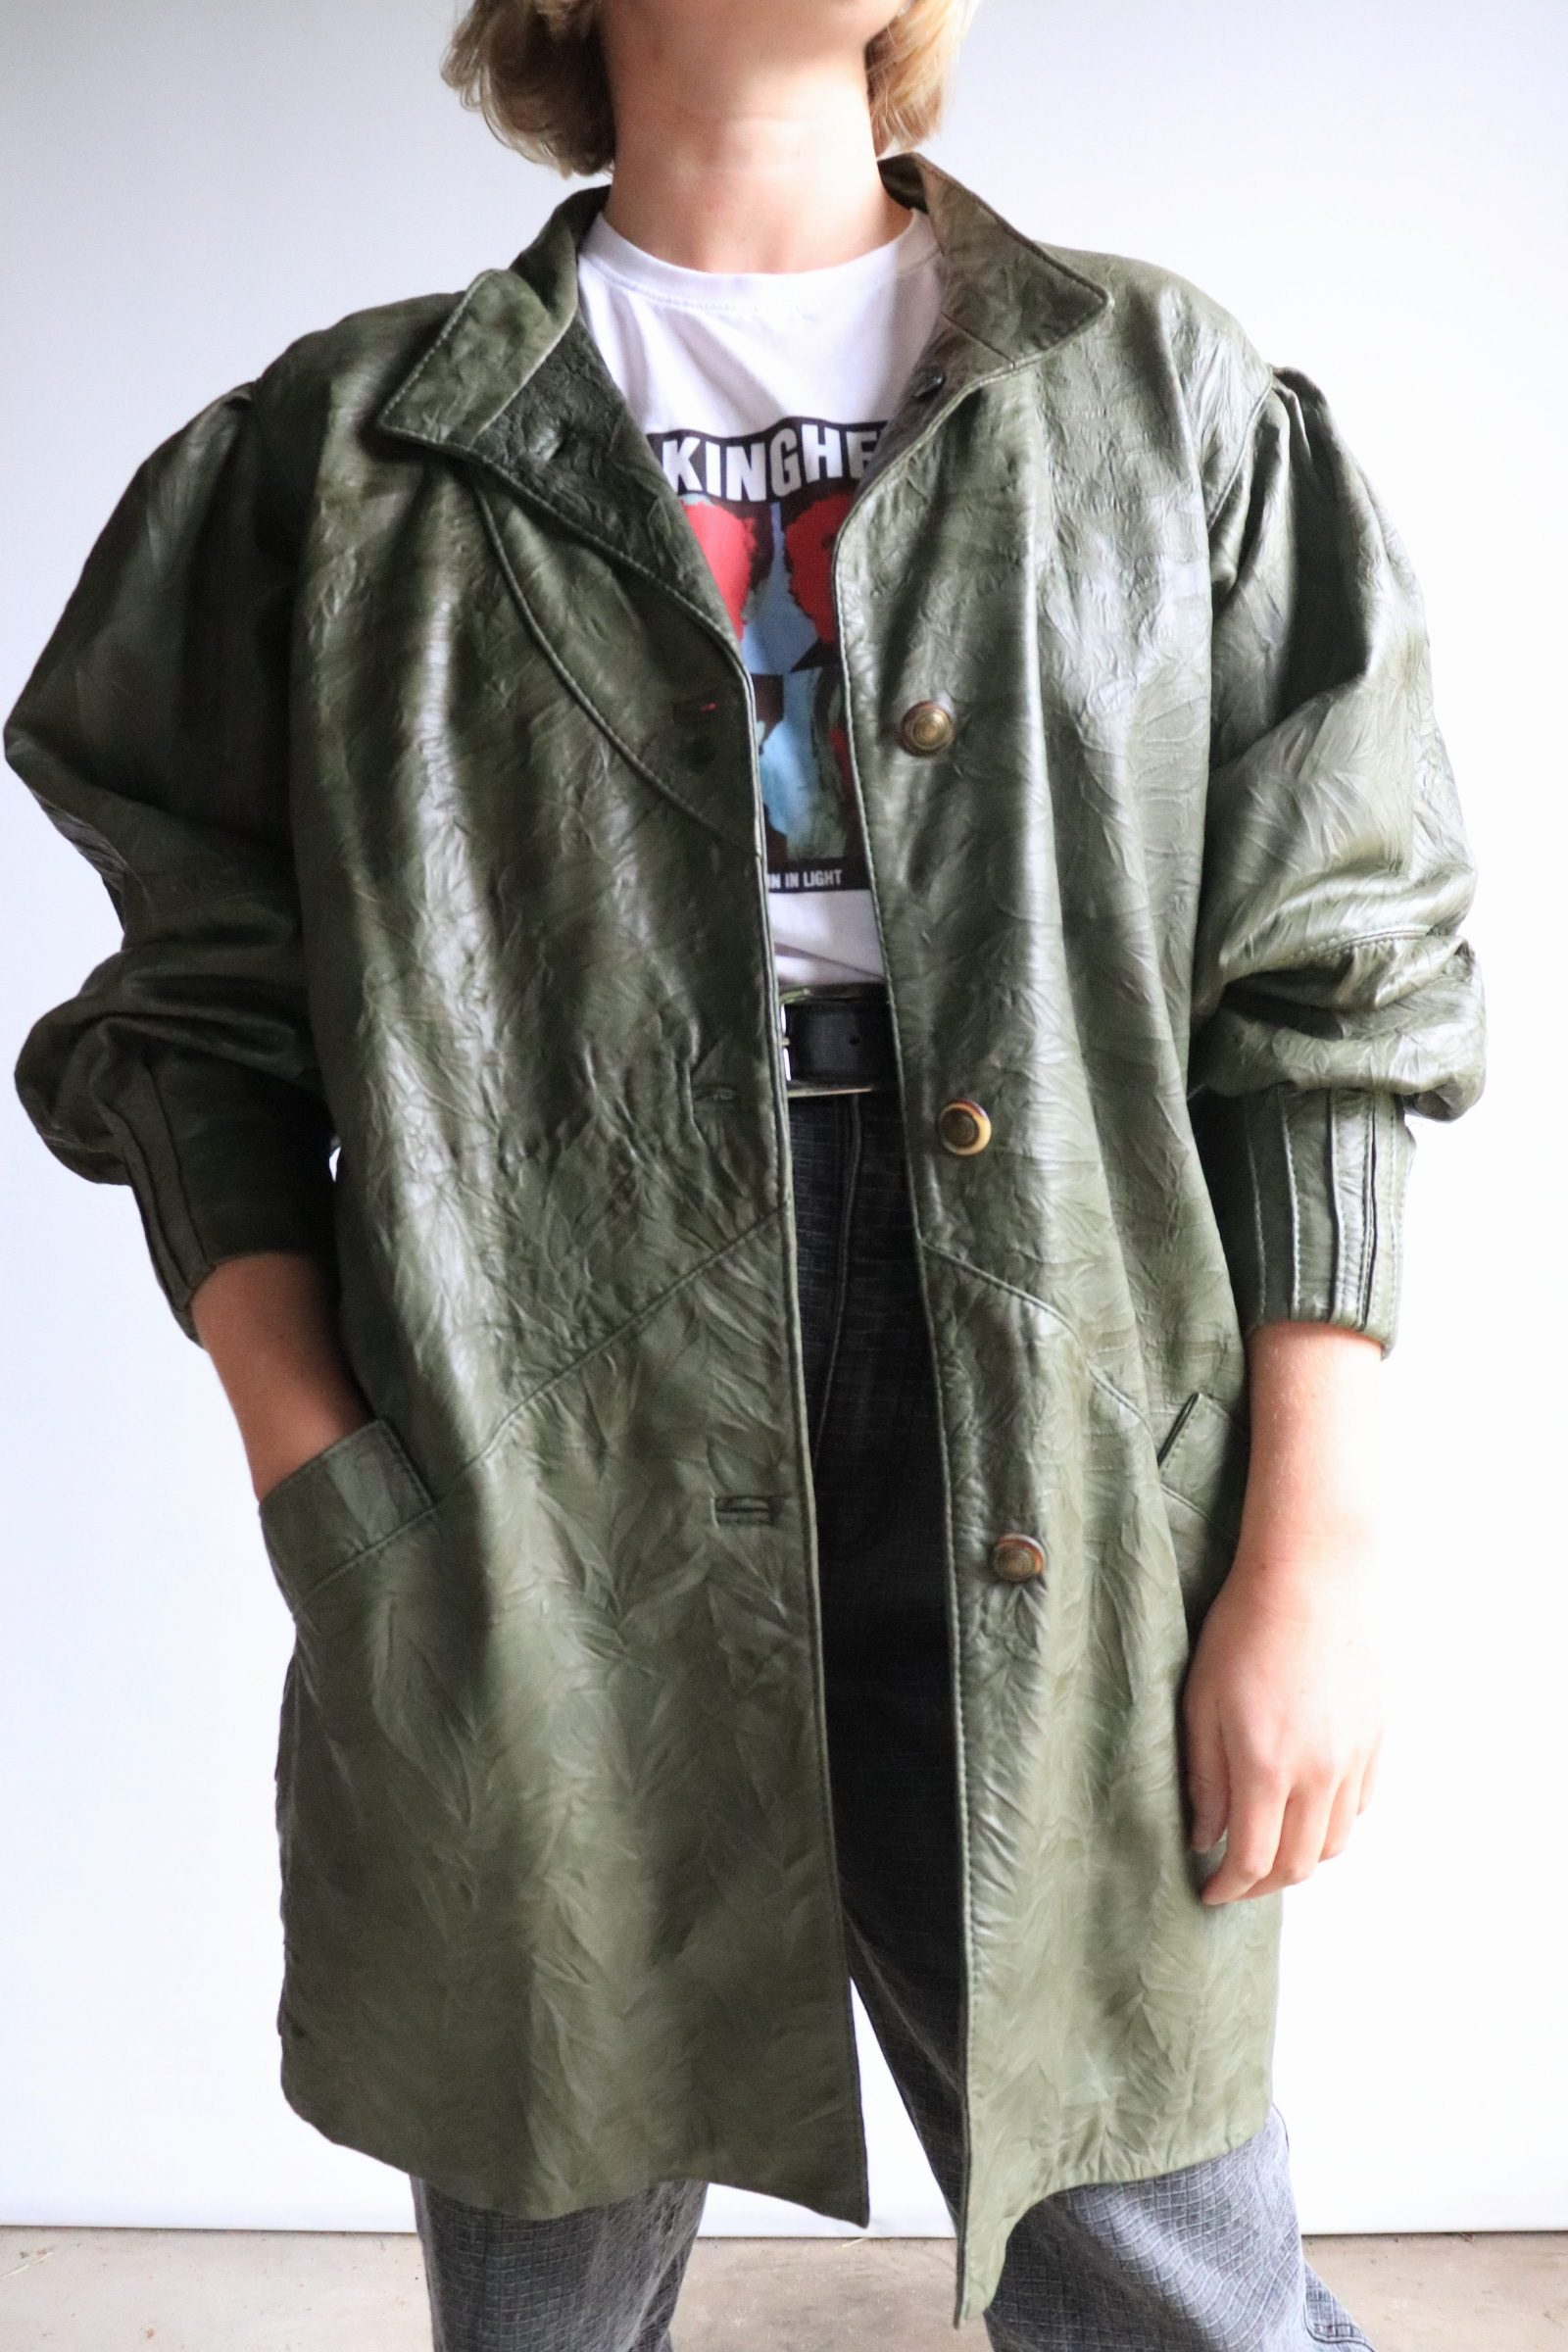 80s green leather jacket